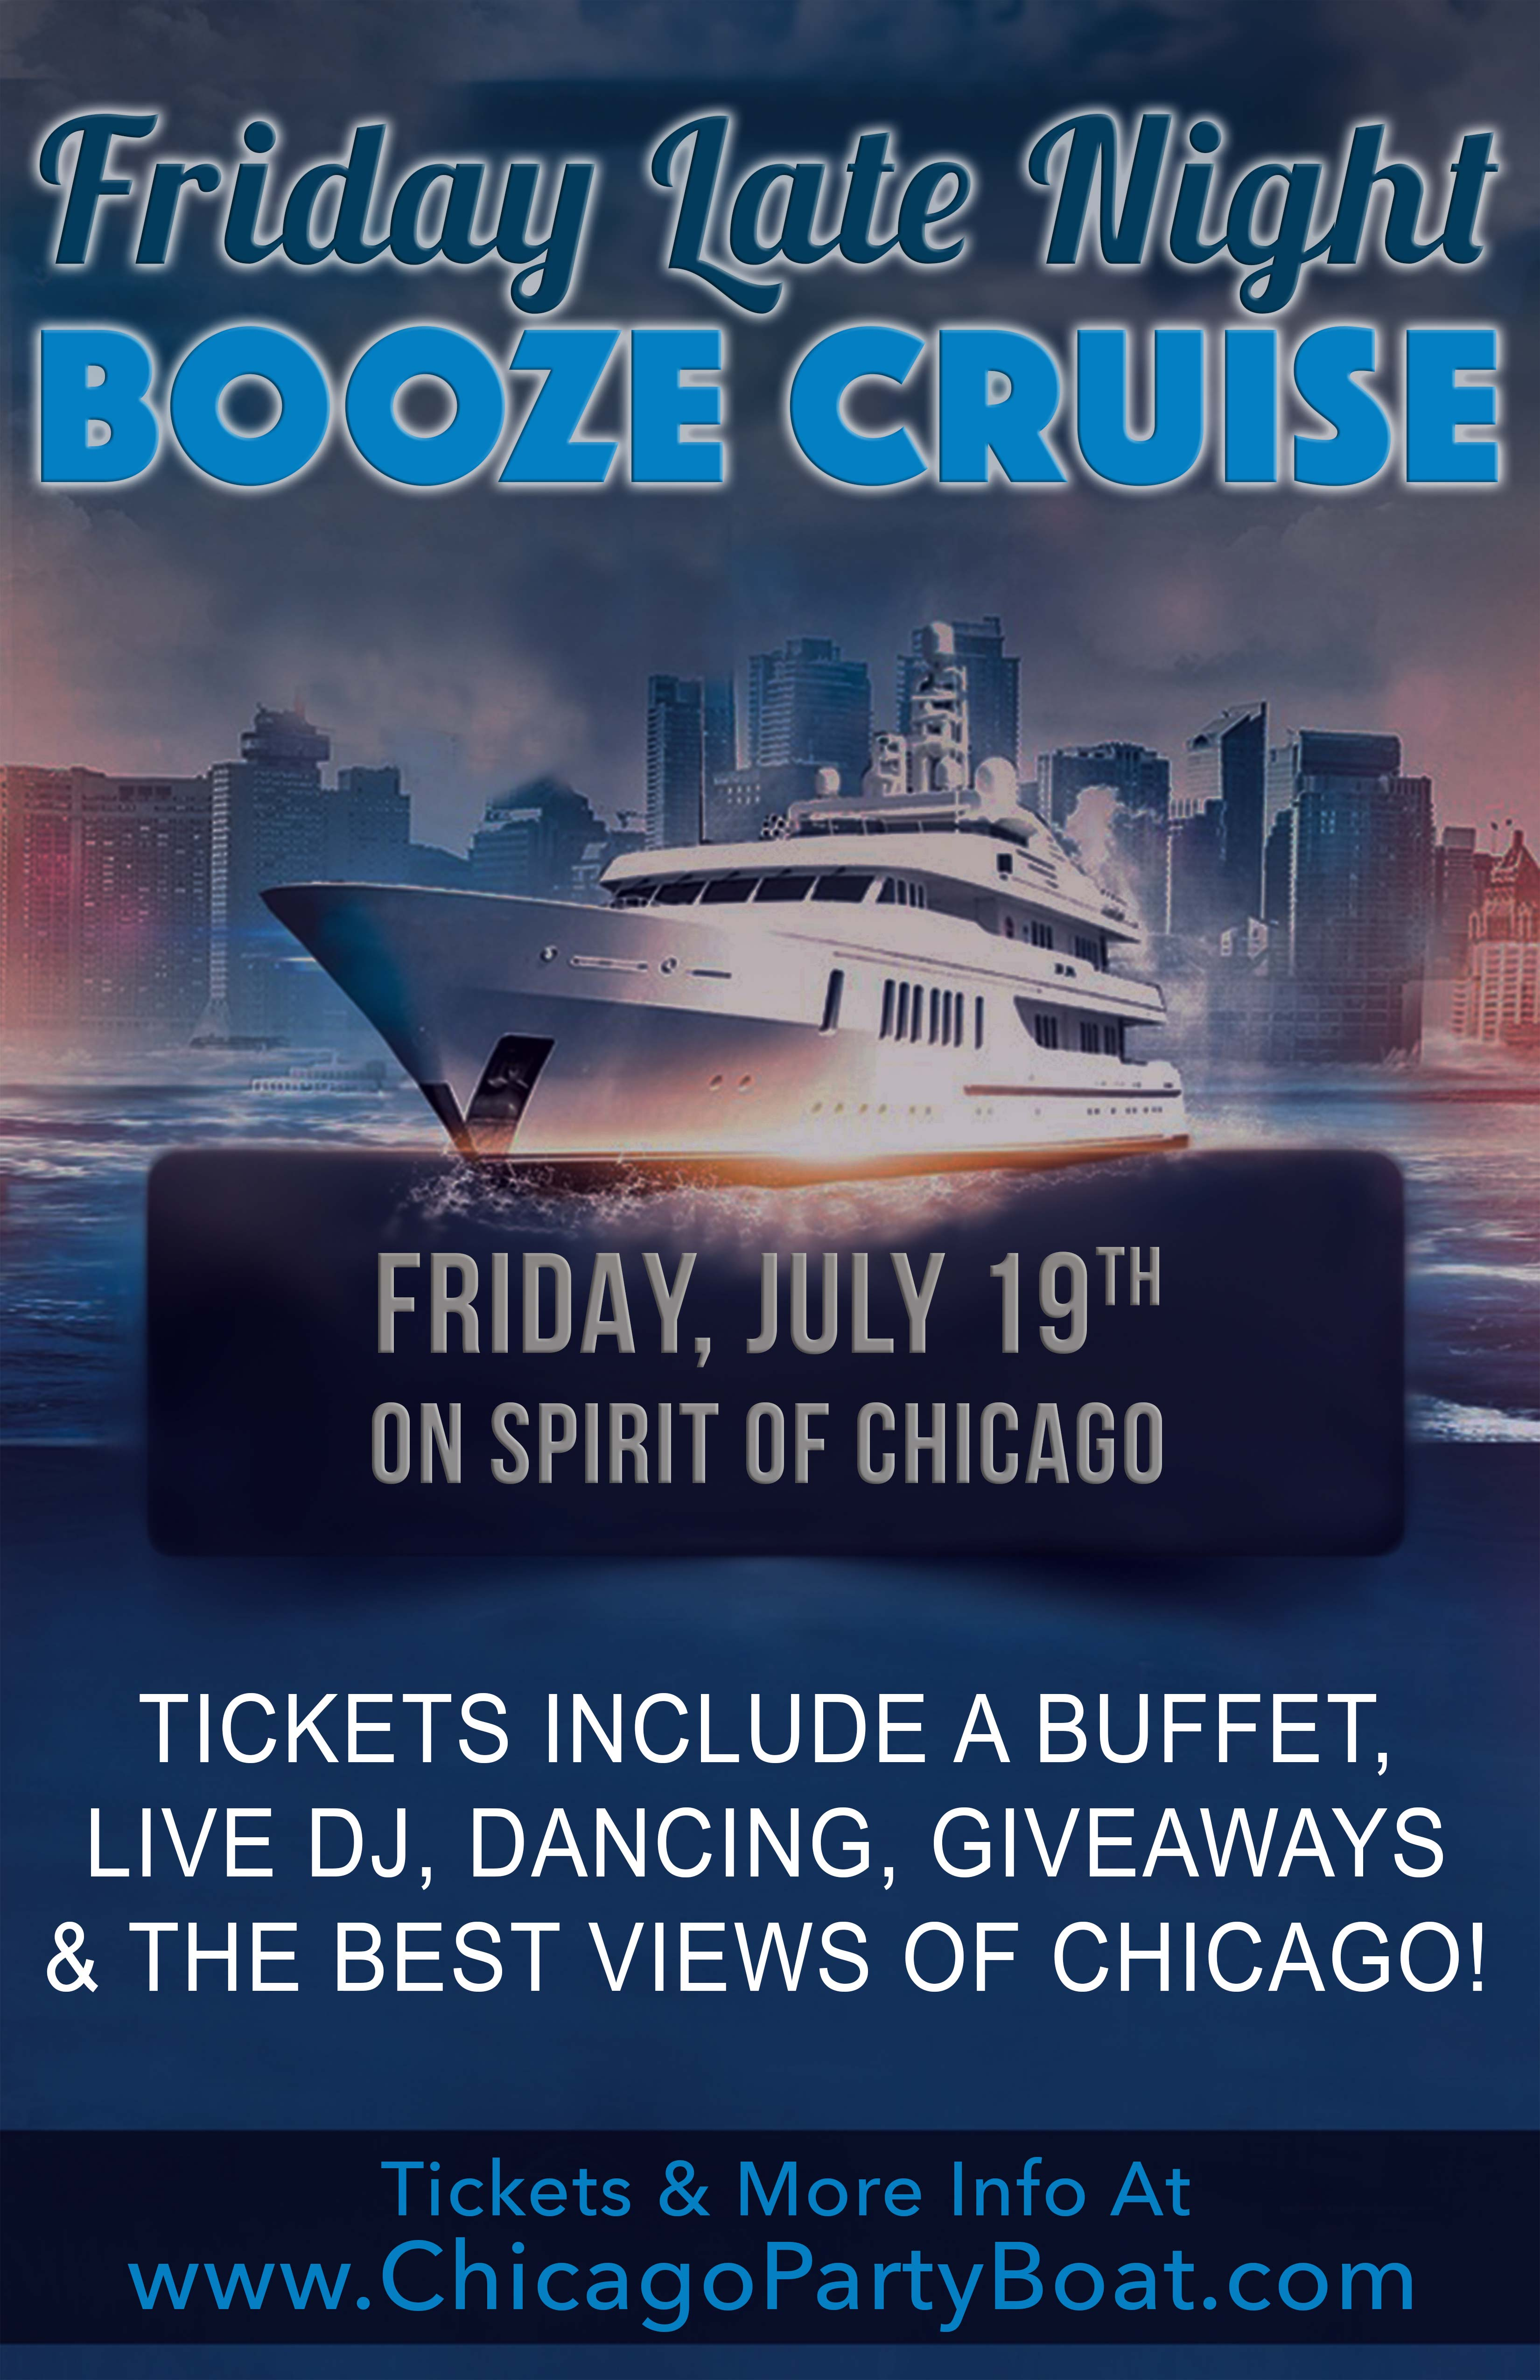 Friday Late Night Booze Cruise Party - Tickets include a Buffet, Live DJ, Dancing, Giveaways, and the best views of Chicago!